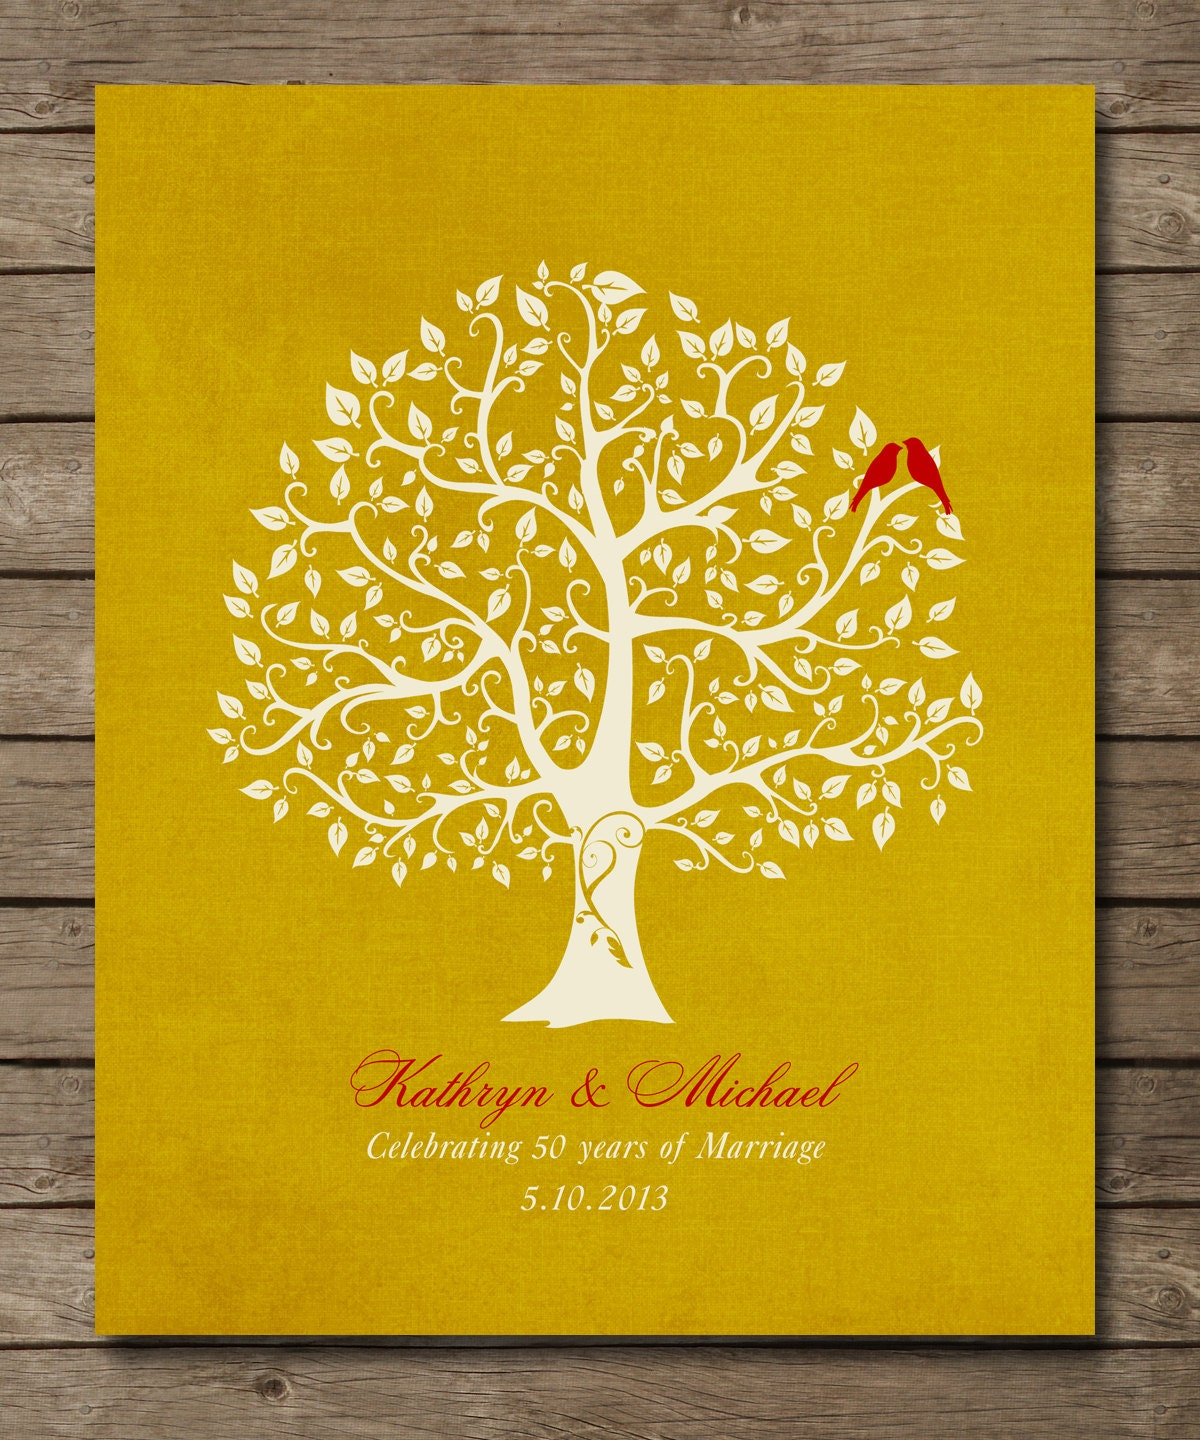 Unique Gifts 50th Wedding Anniversary : 50th Wedding Anniversary Tree Gift Golden by WordsWorkPrints